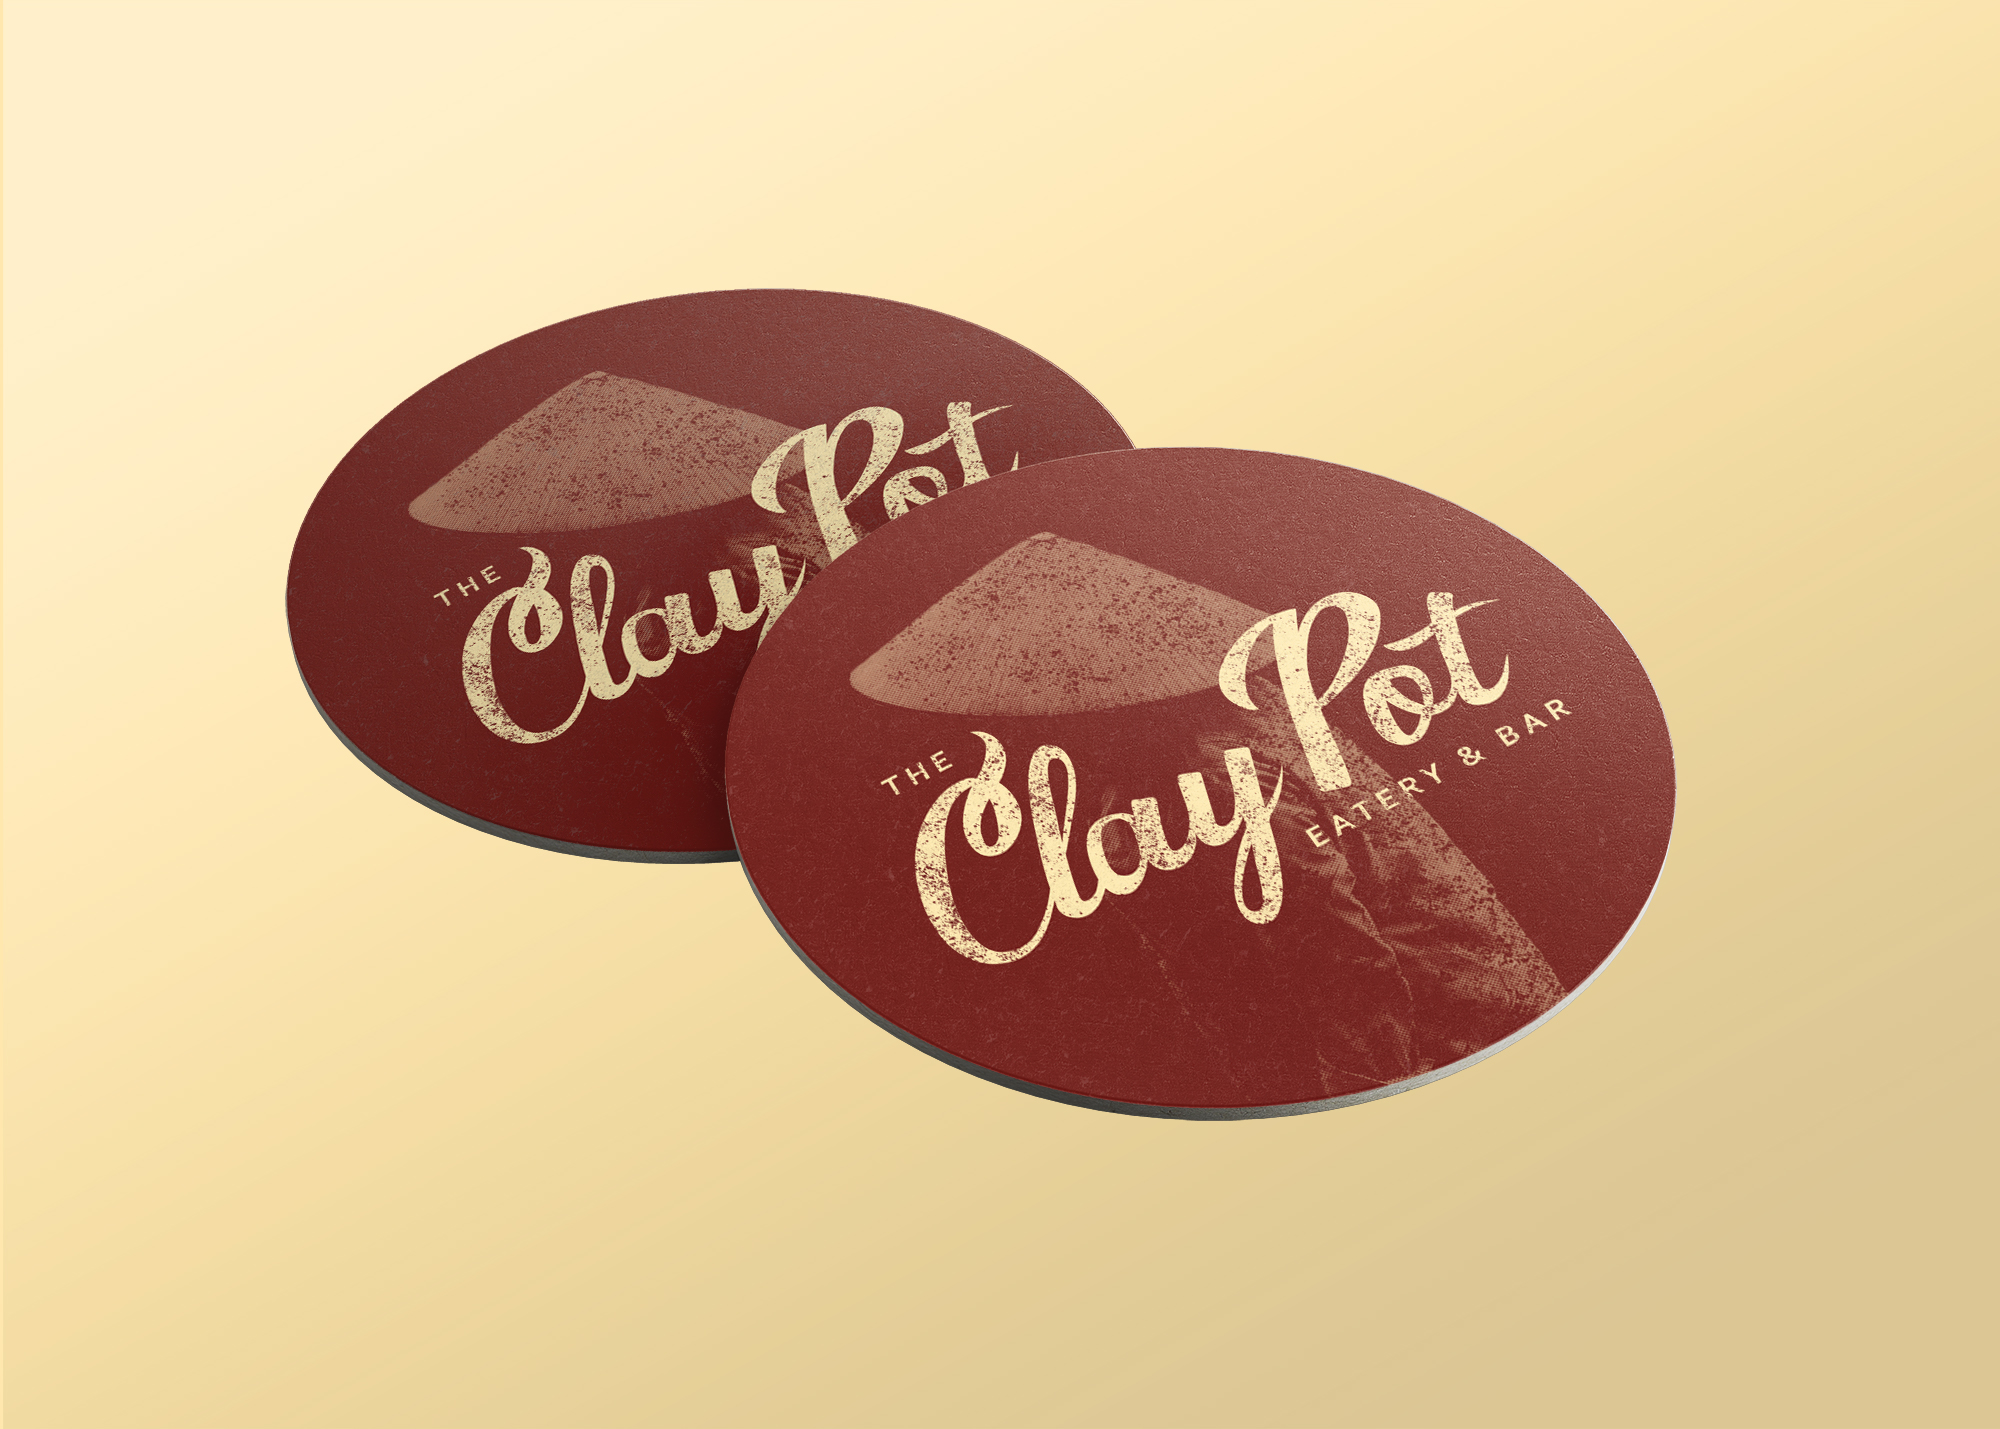 """Designed mockup of chocolate colored coasters that say """"Clay Pot."""""""